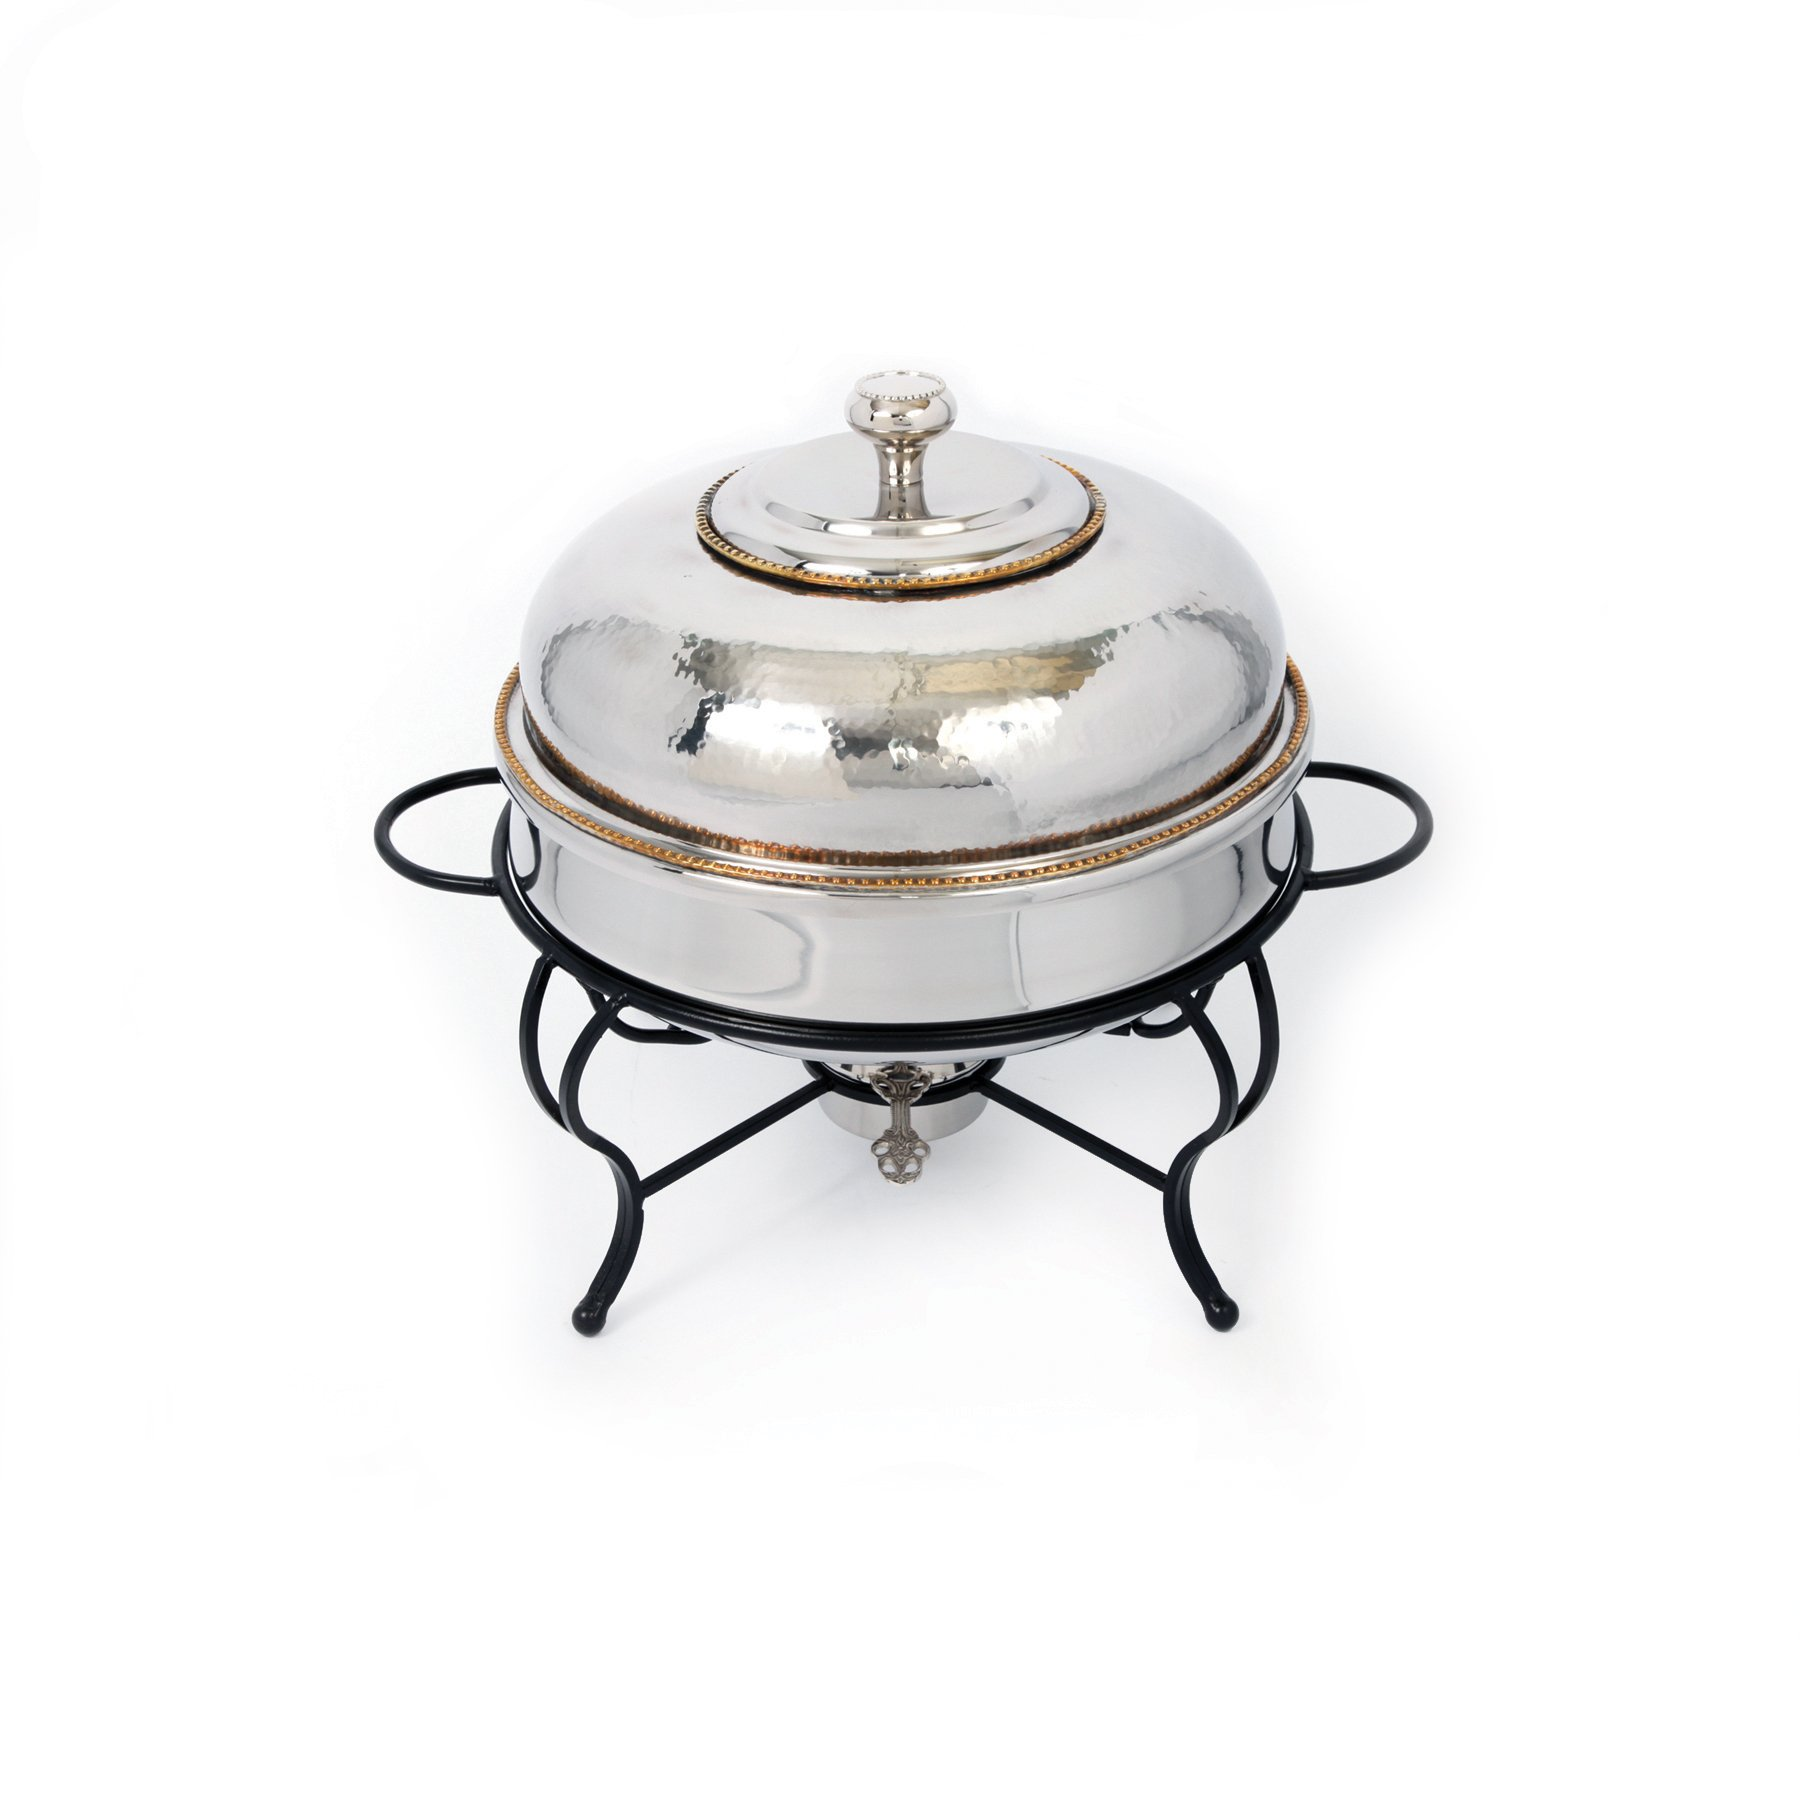 Star Home 6-Quart Round Stainless Steel Chafing Dish